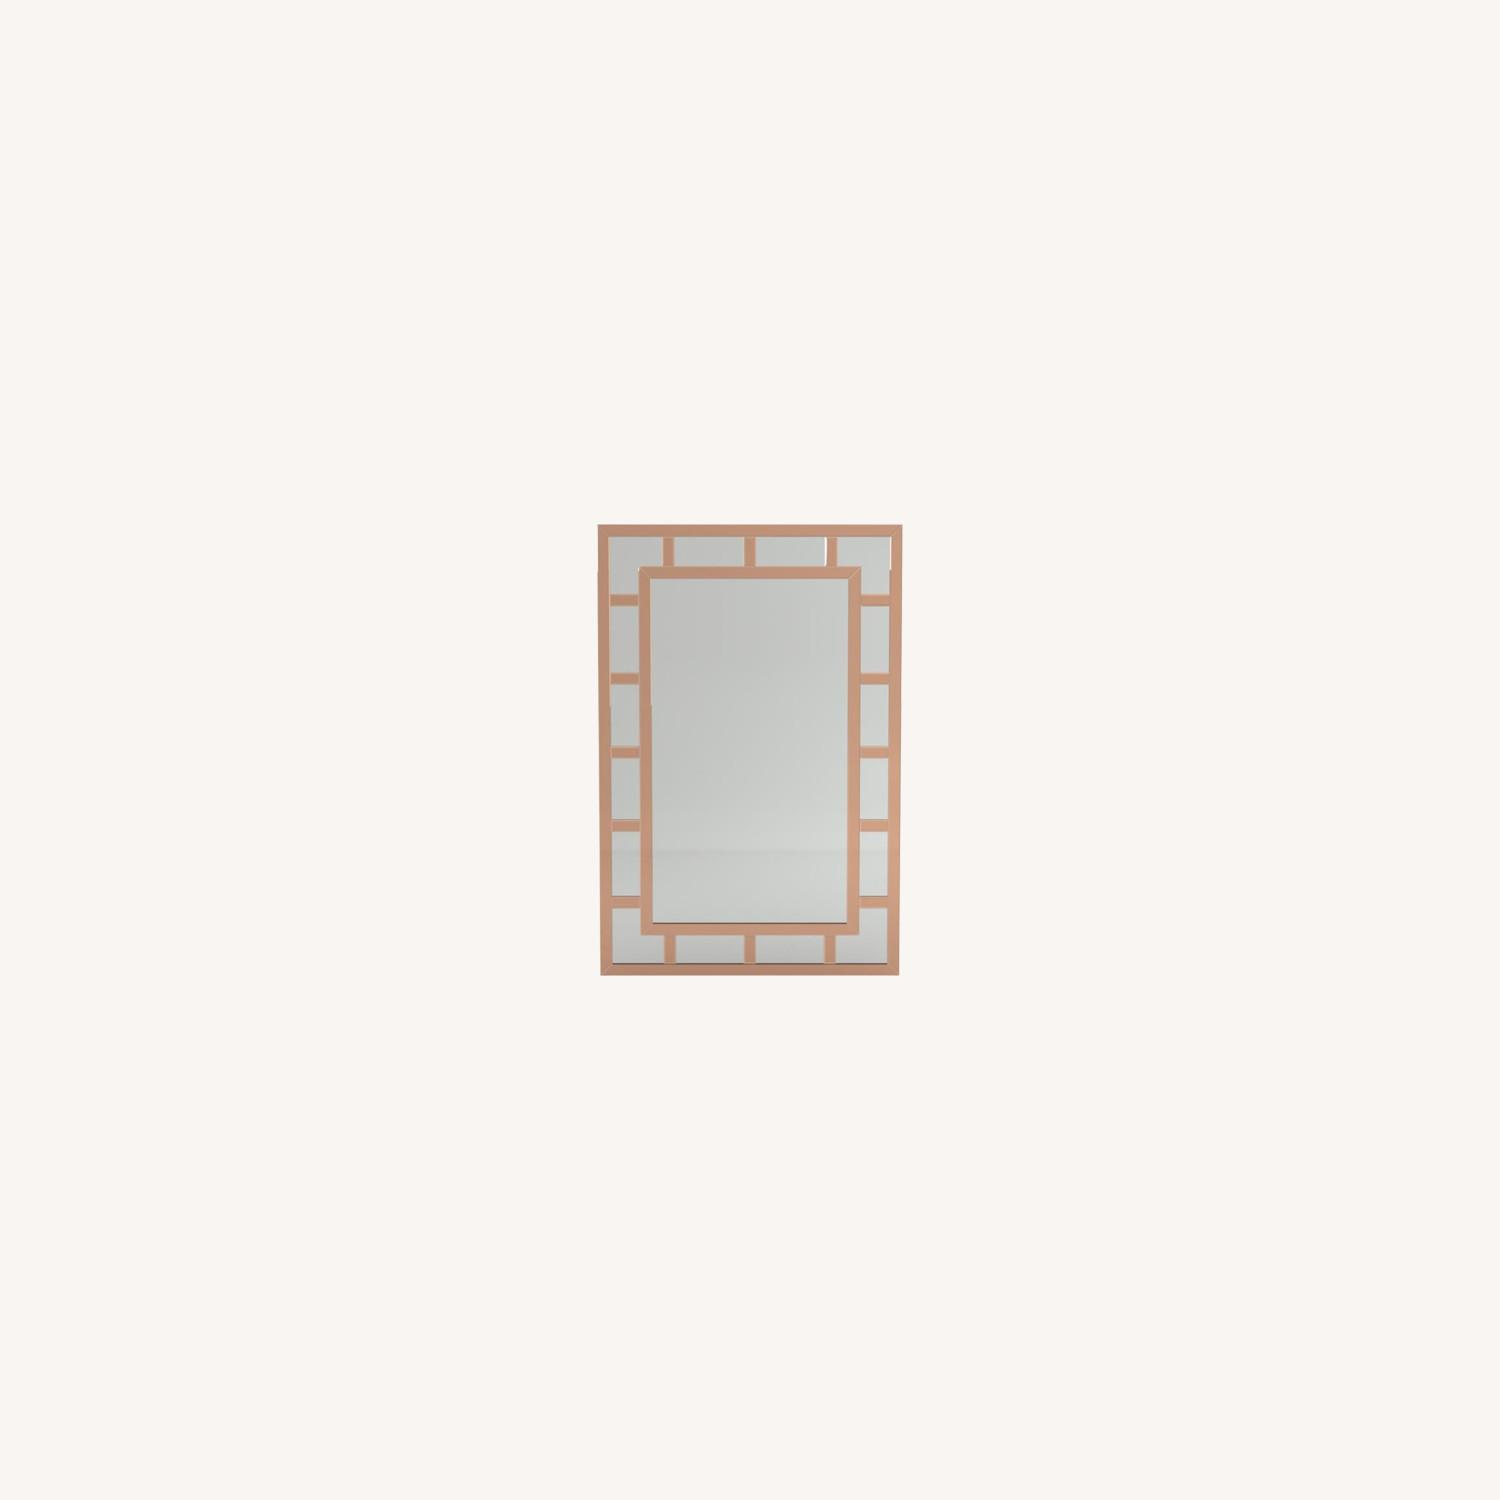 Mirror In Rose Gold Finish W/ Overlaying Design - image-4